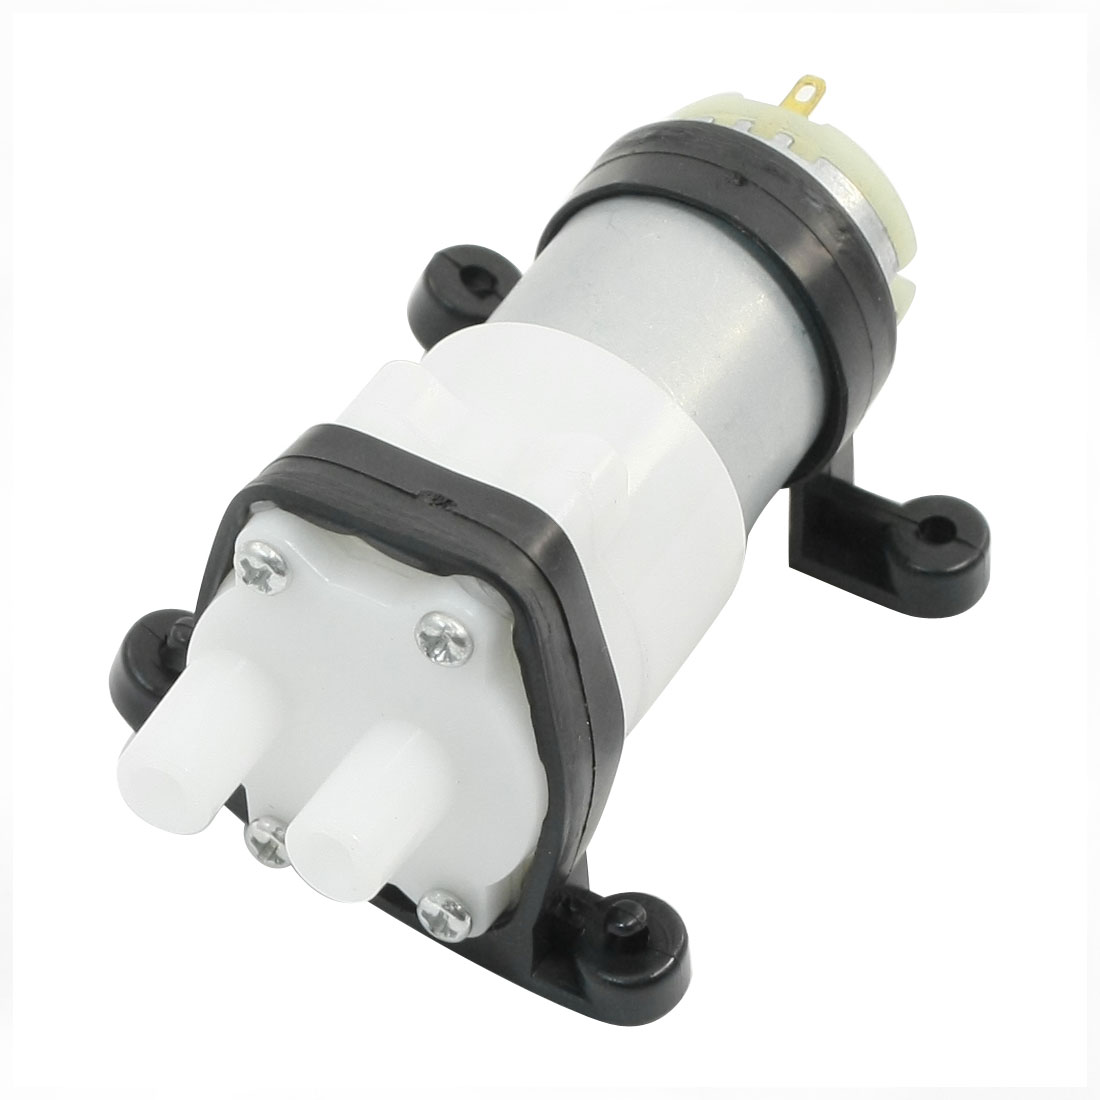 Priming Diaphragm Pump Spray Motor 12V for Water Dispenser